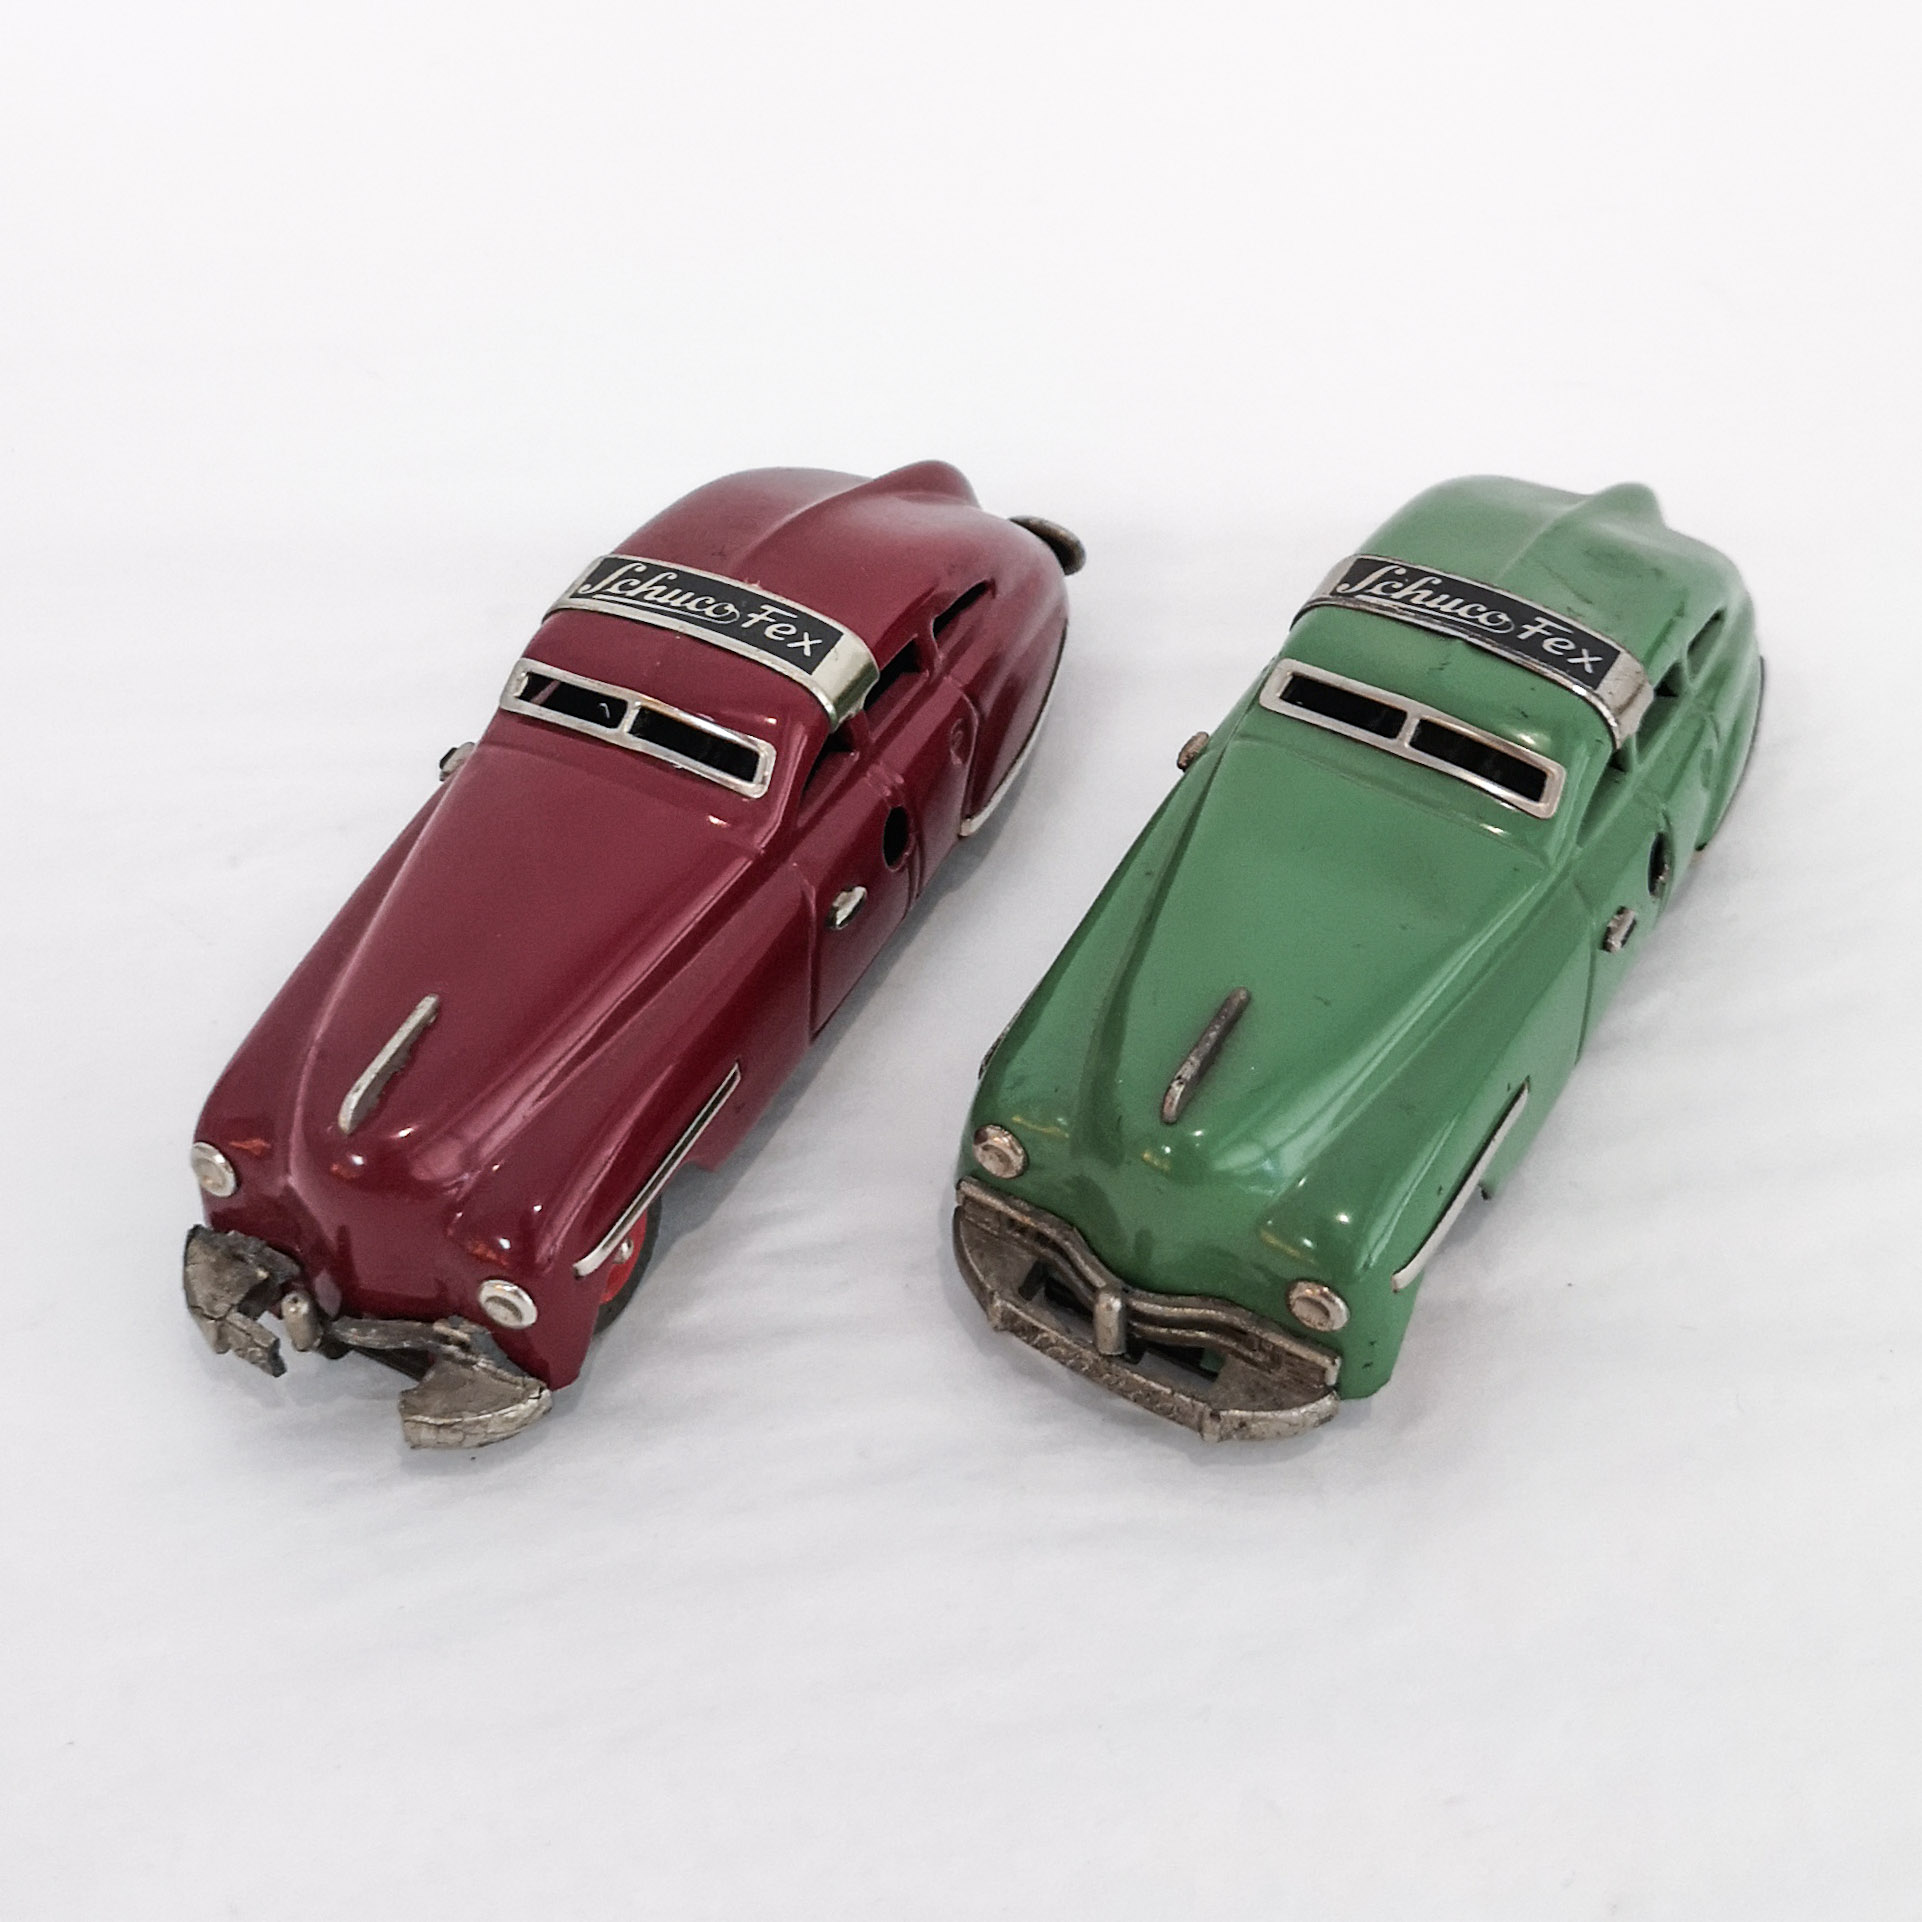 Maroon and green Schuco Fex tinplate clockwork cars with rollover feature. Made in US Zone Germany, ca. 1950s.